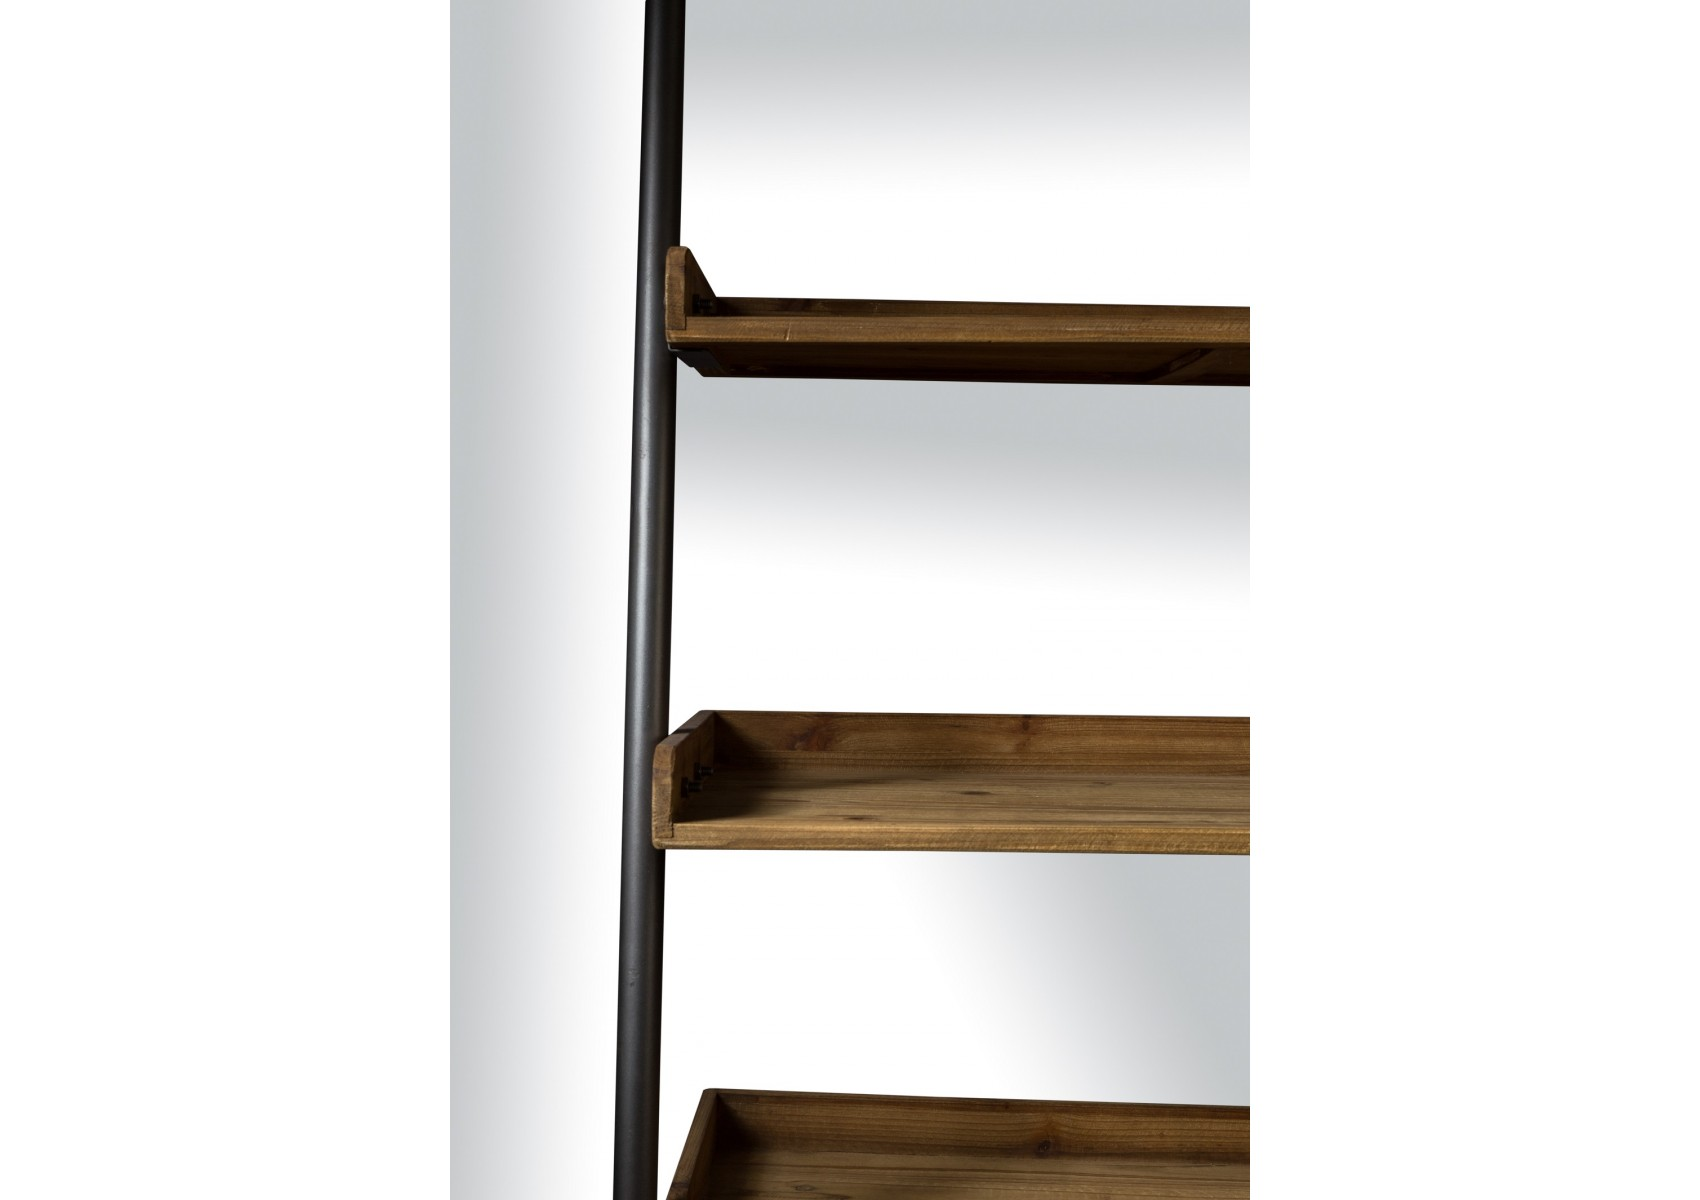 Etag re en bois et m tal shelf wally de chez boite design - Etagere metal design ...